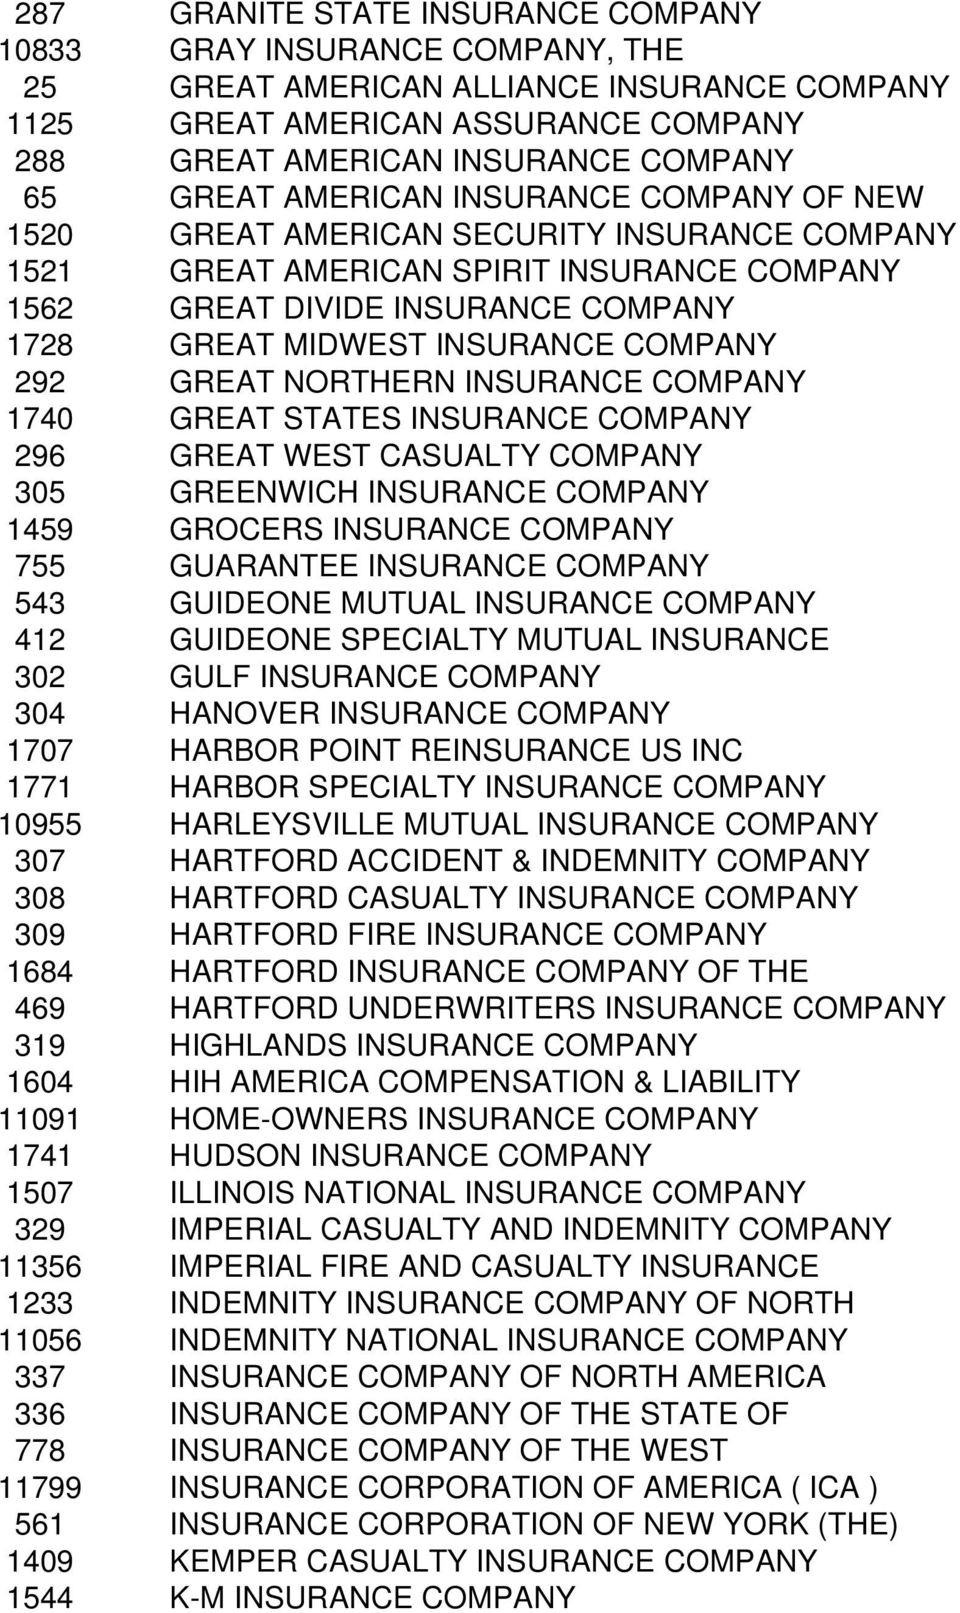 292 GREAT NORTHERN INSURANCE COMPANY 1740 GREAT STATES INSURANCE COMPANY 296 GREAT WEST CASUALTY COMPANY 305 GREENWICH INSURANCE COMPANY 1459 GROCERS INSURANCE COMPANY 755 GUARANTEE INSURANCE COMPANY